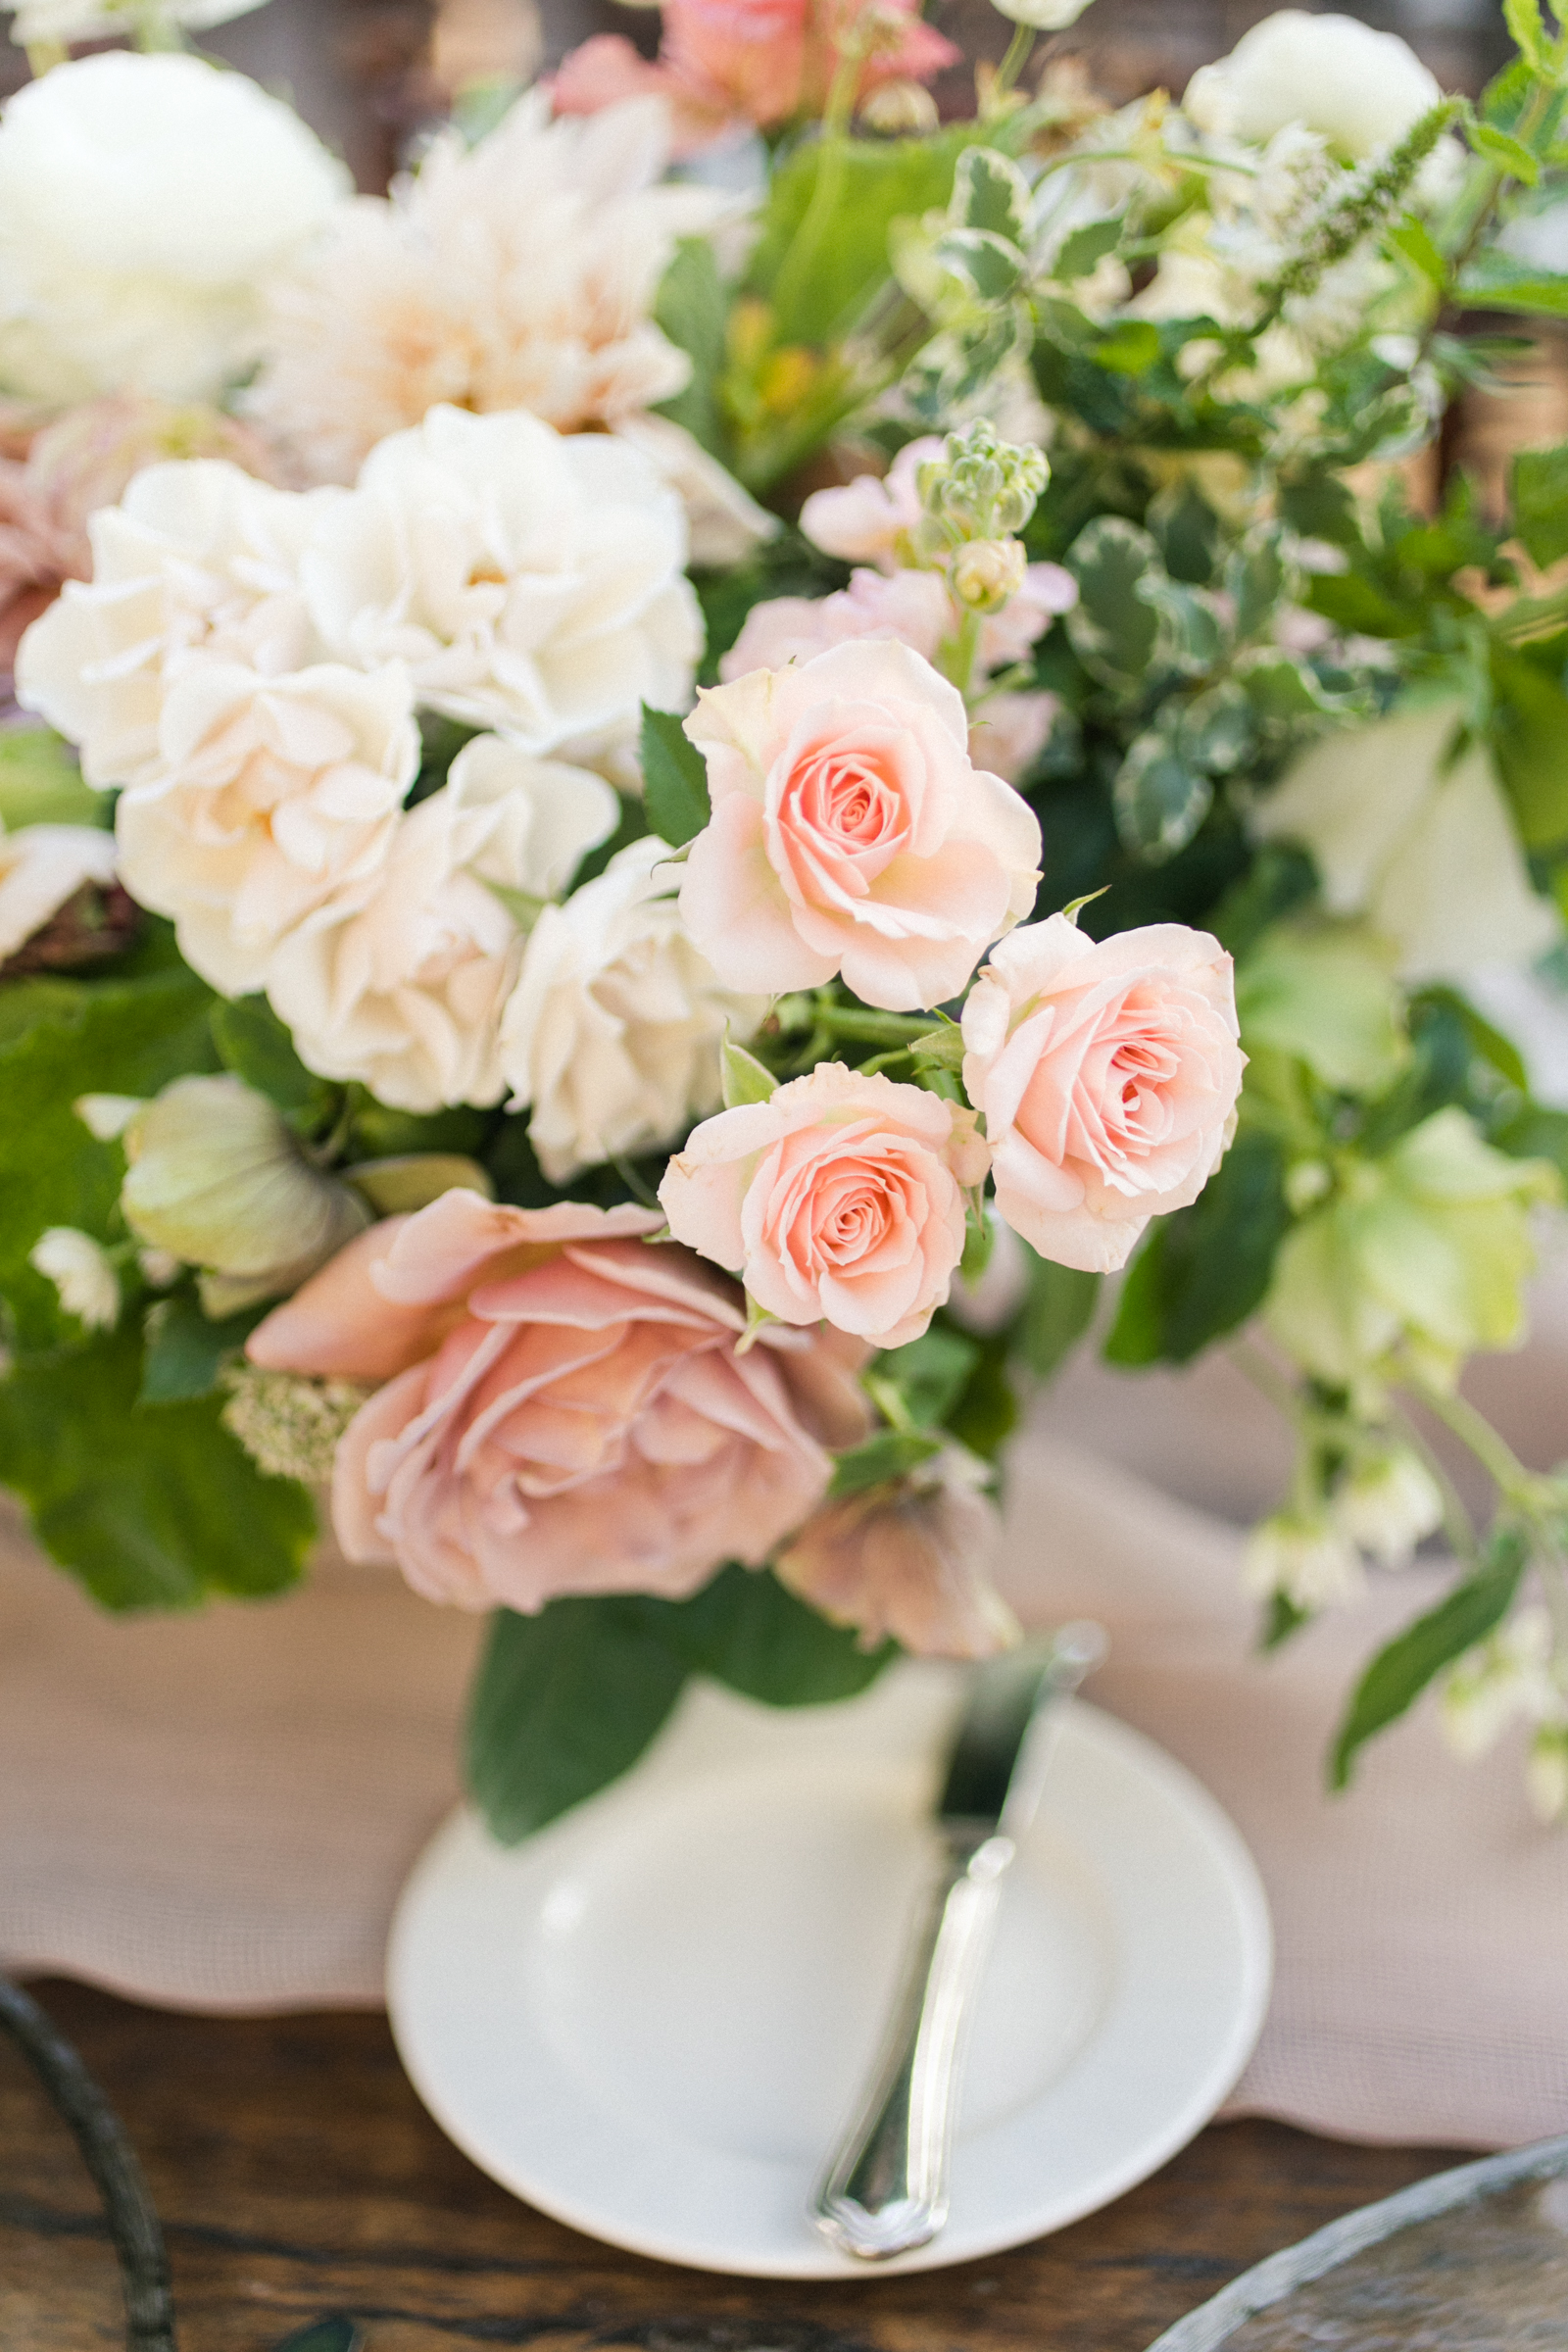 Hey Santa Barbara! - We can hardly wait to introduce you to our flowers! More details and pretty things await.. get on our email list to get notified! We are changing the way you book your wedding florist!